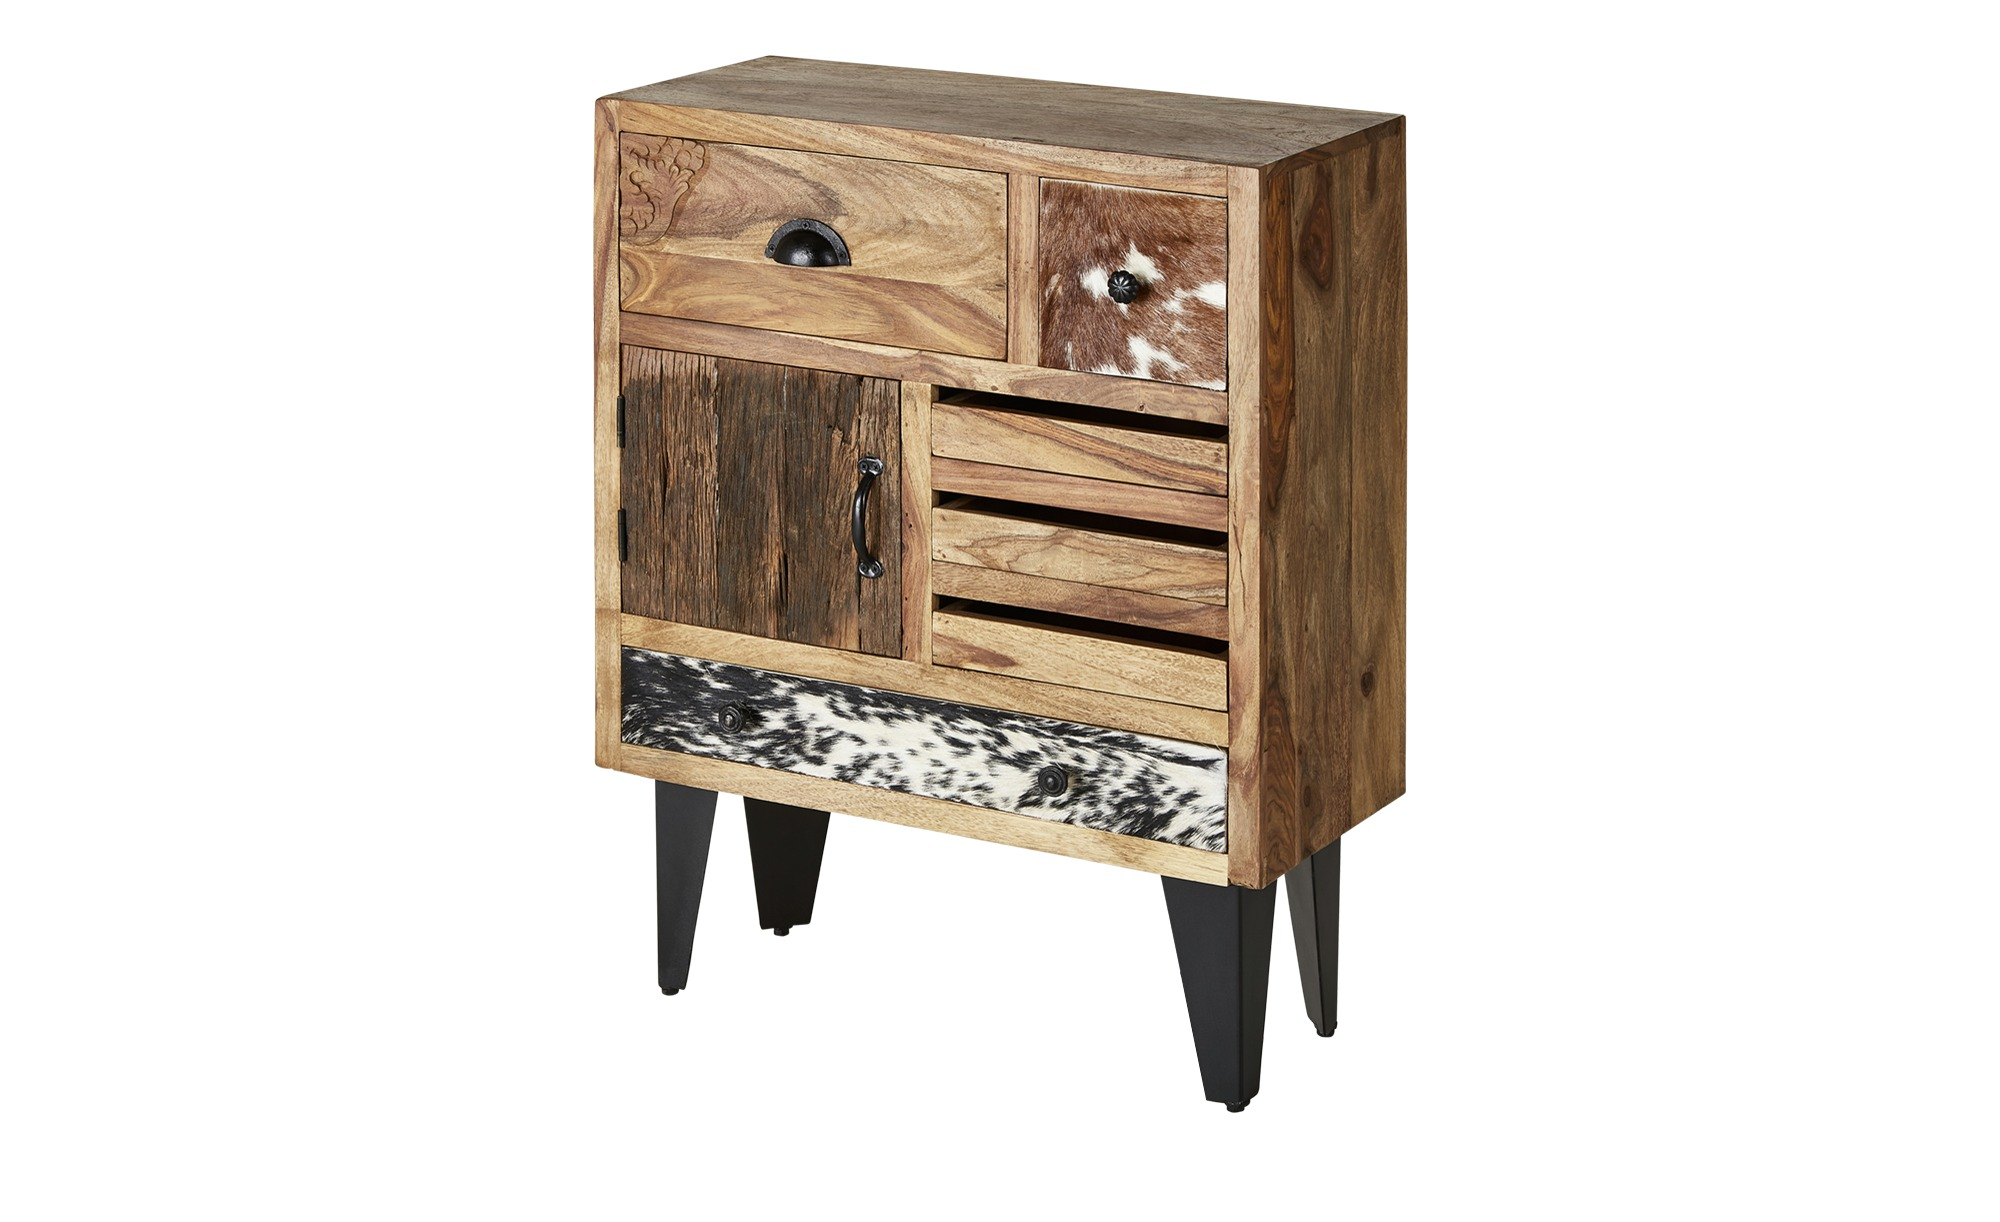 kommode cow breite 70 cm h he 89 cm holzfarben online kaufen bei woonio. Black Bedroom Furniture Sets. Home Design Ideas